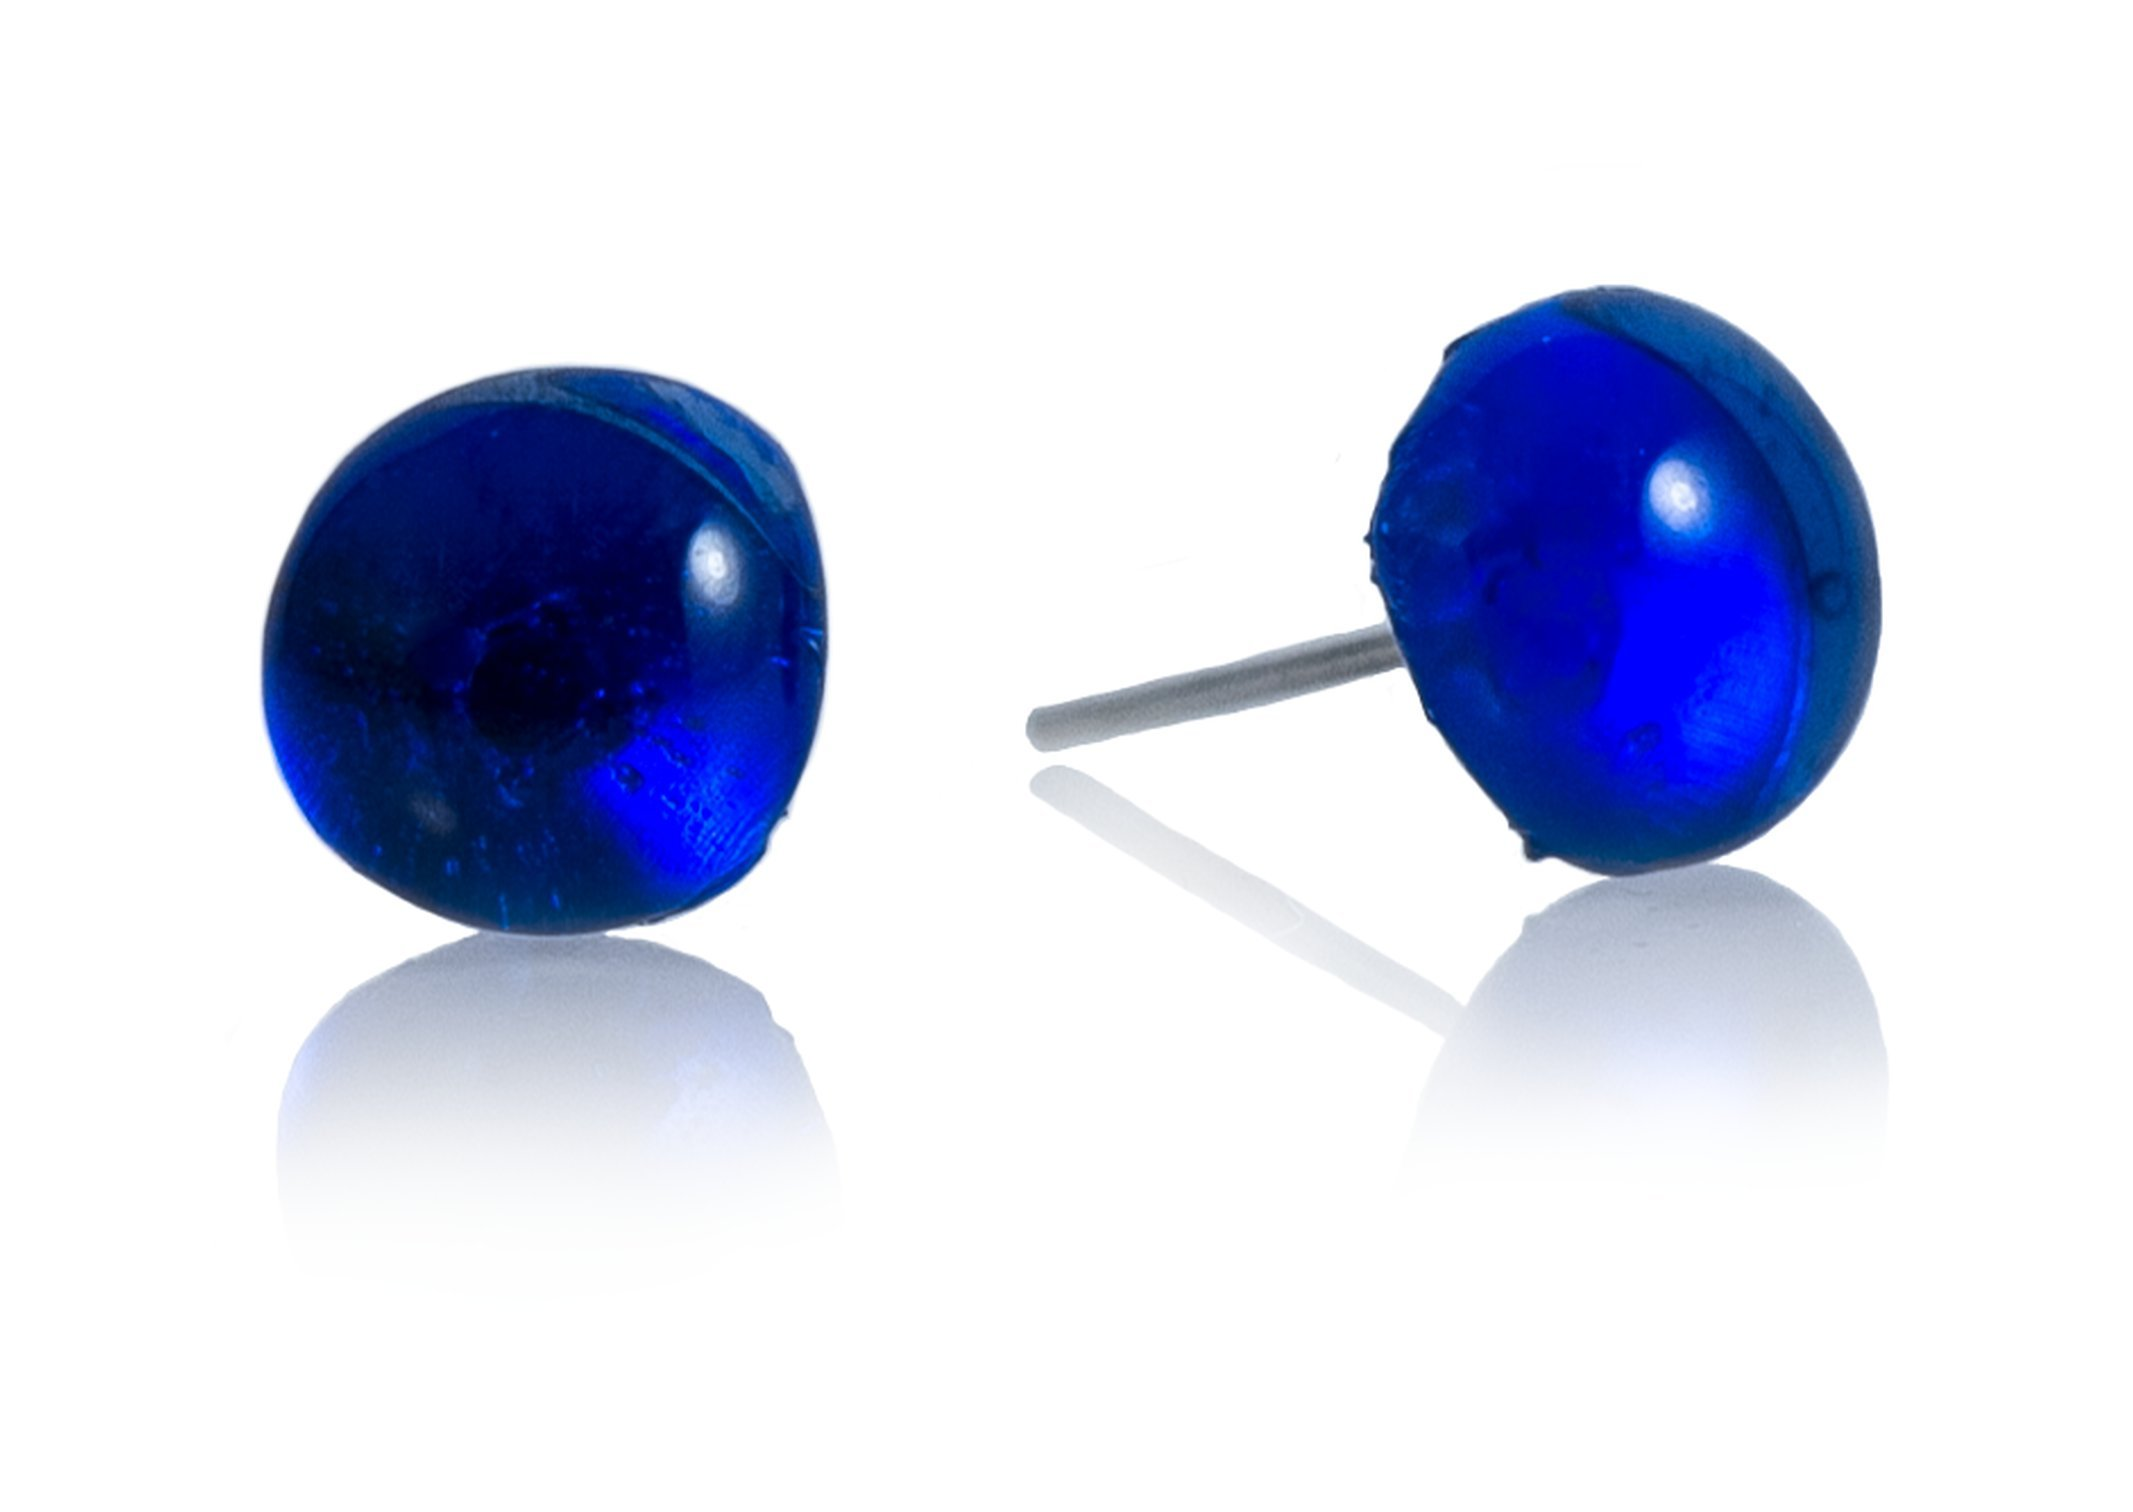 Recycled Glass Ball Stud Earrings by Moneta Jewelry (Blue)